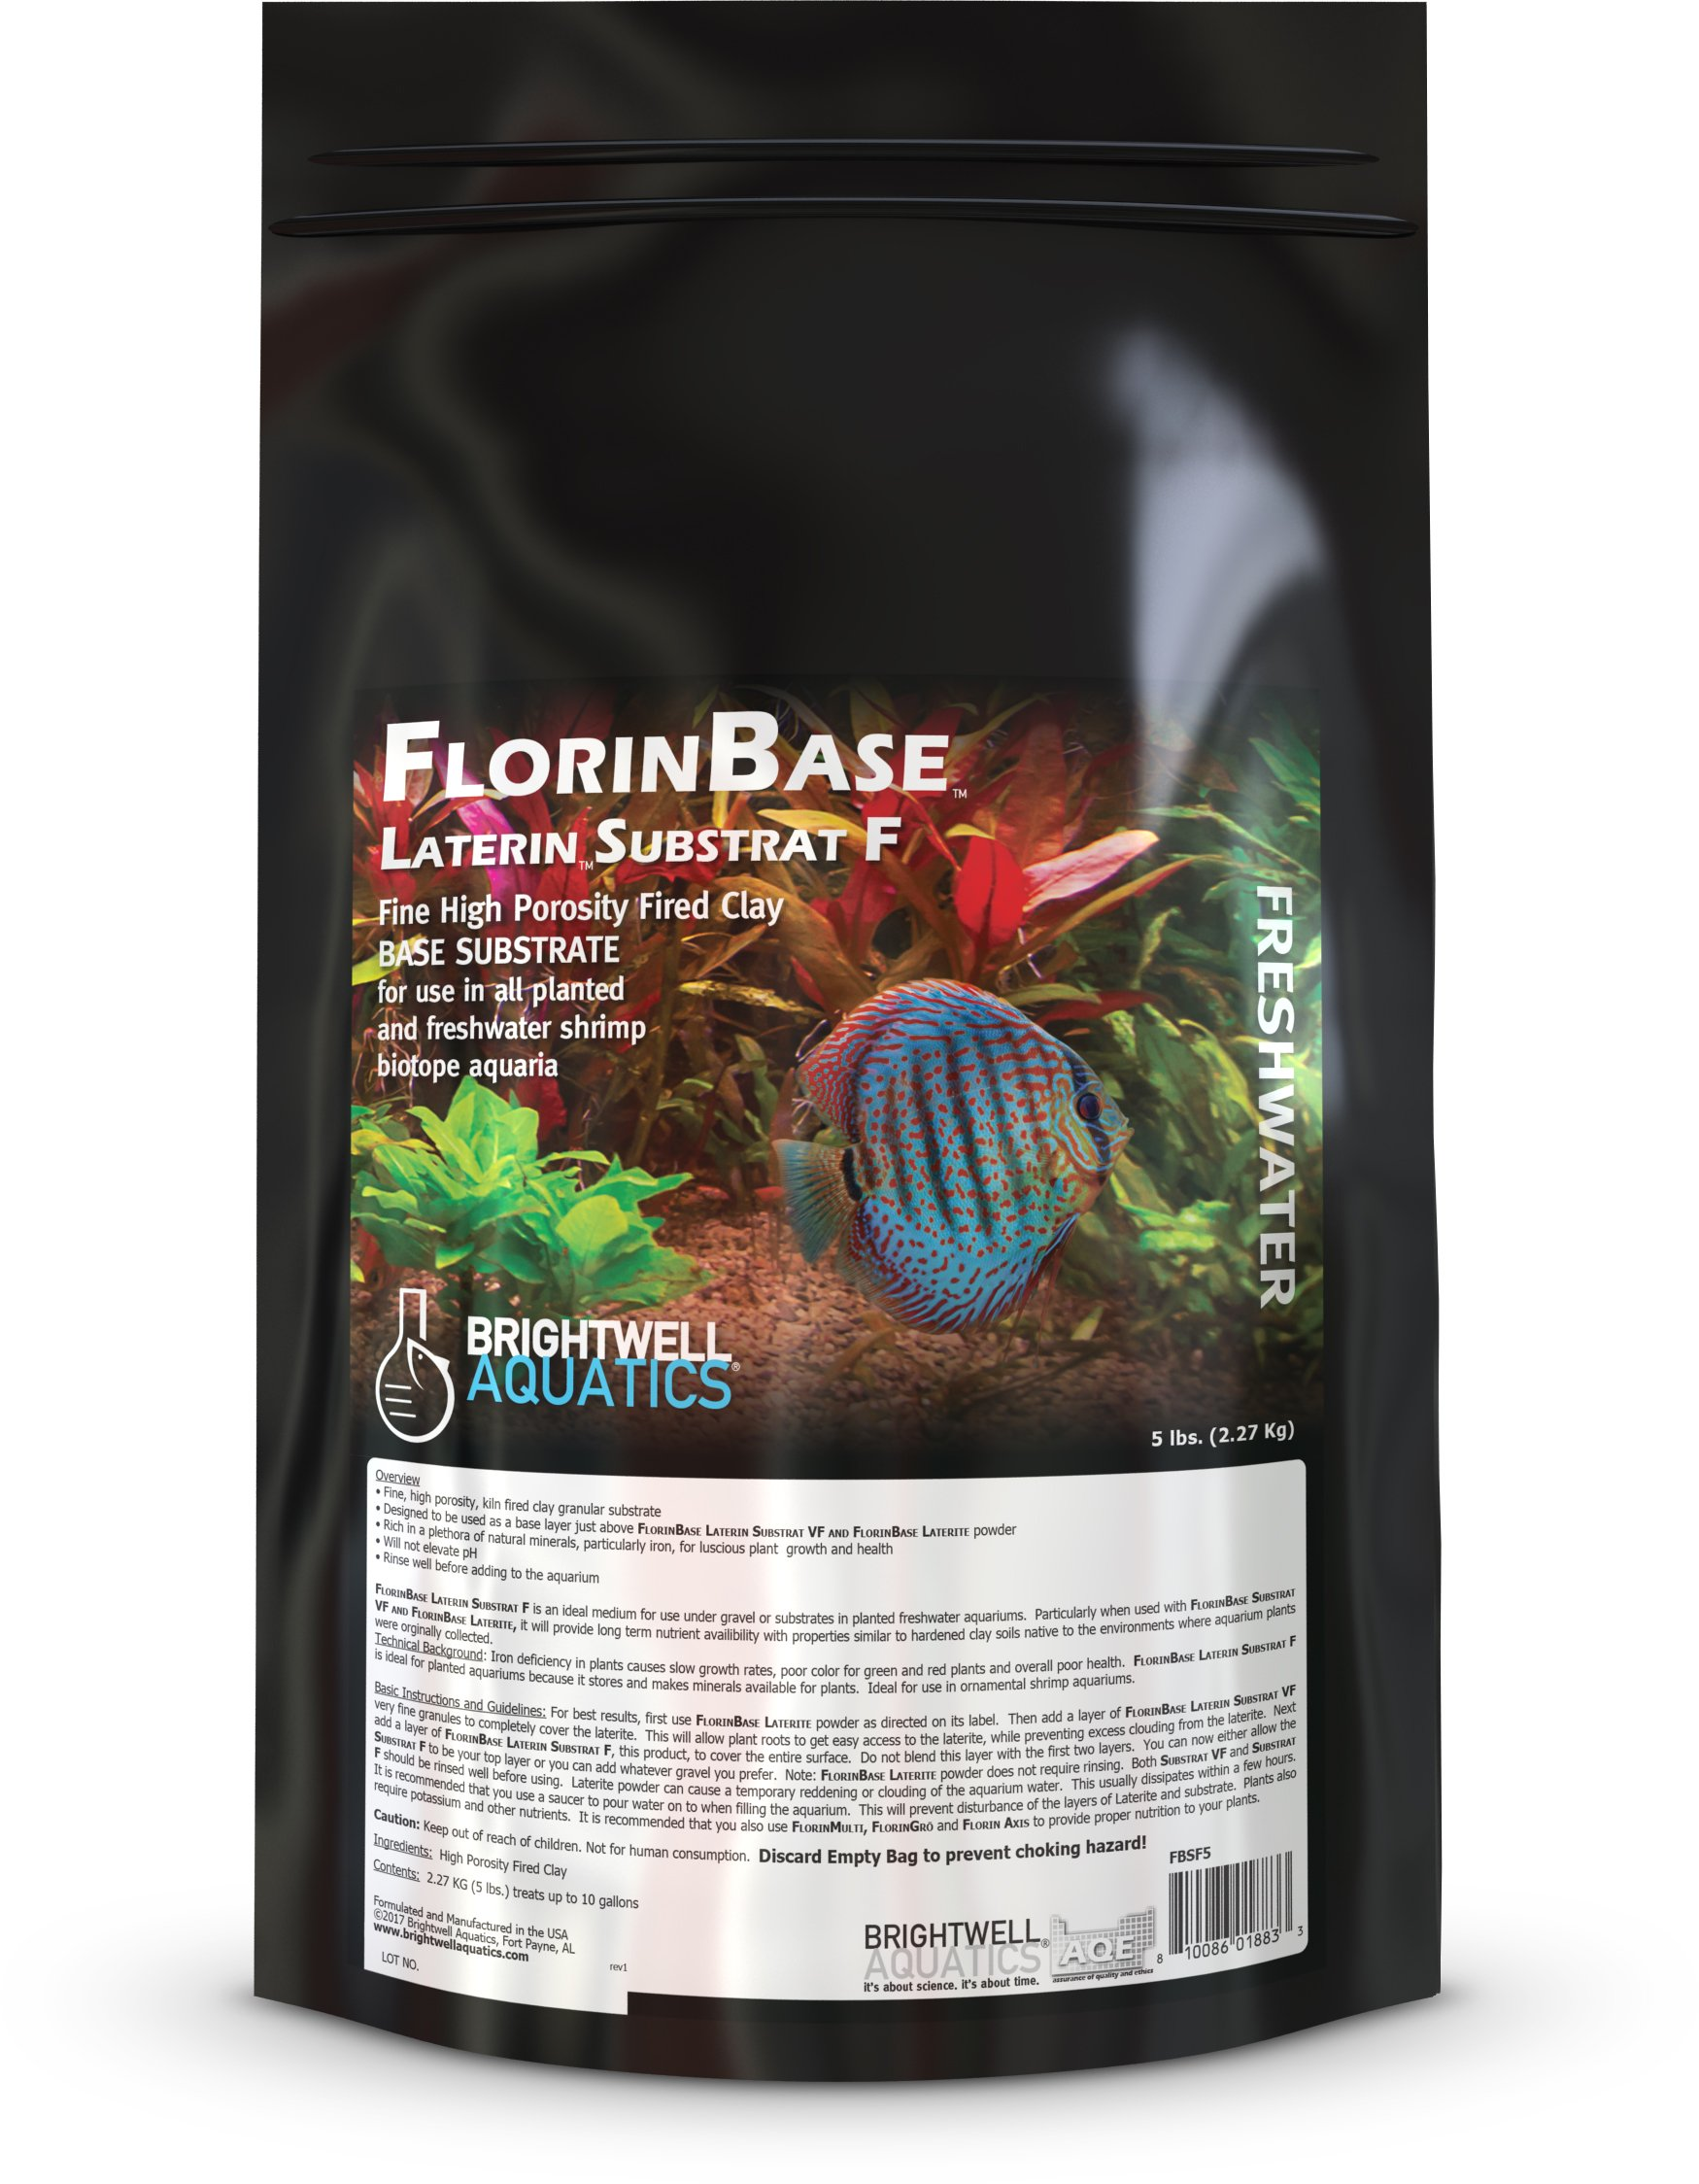 Brightwell Aquatics FlorinBase Laterin Substrat F, Fine Granular High Porosity Clay Base Substrate for use in Planted and Freshwater Shrimp biotope Aquaria, 5 Lbs